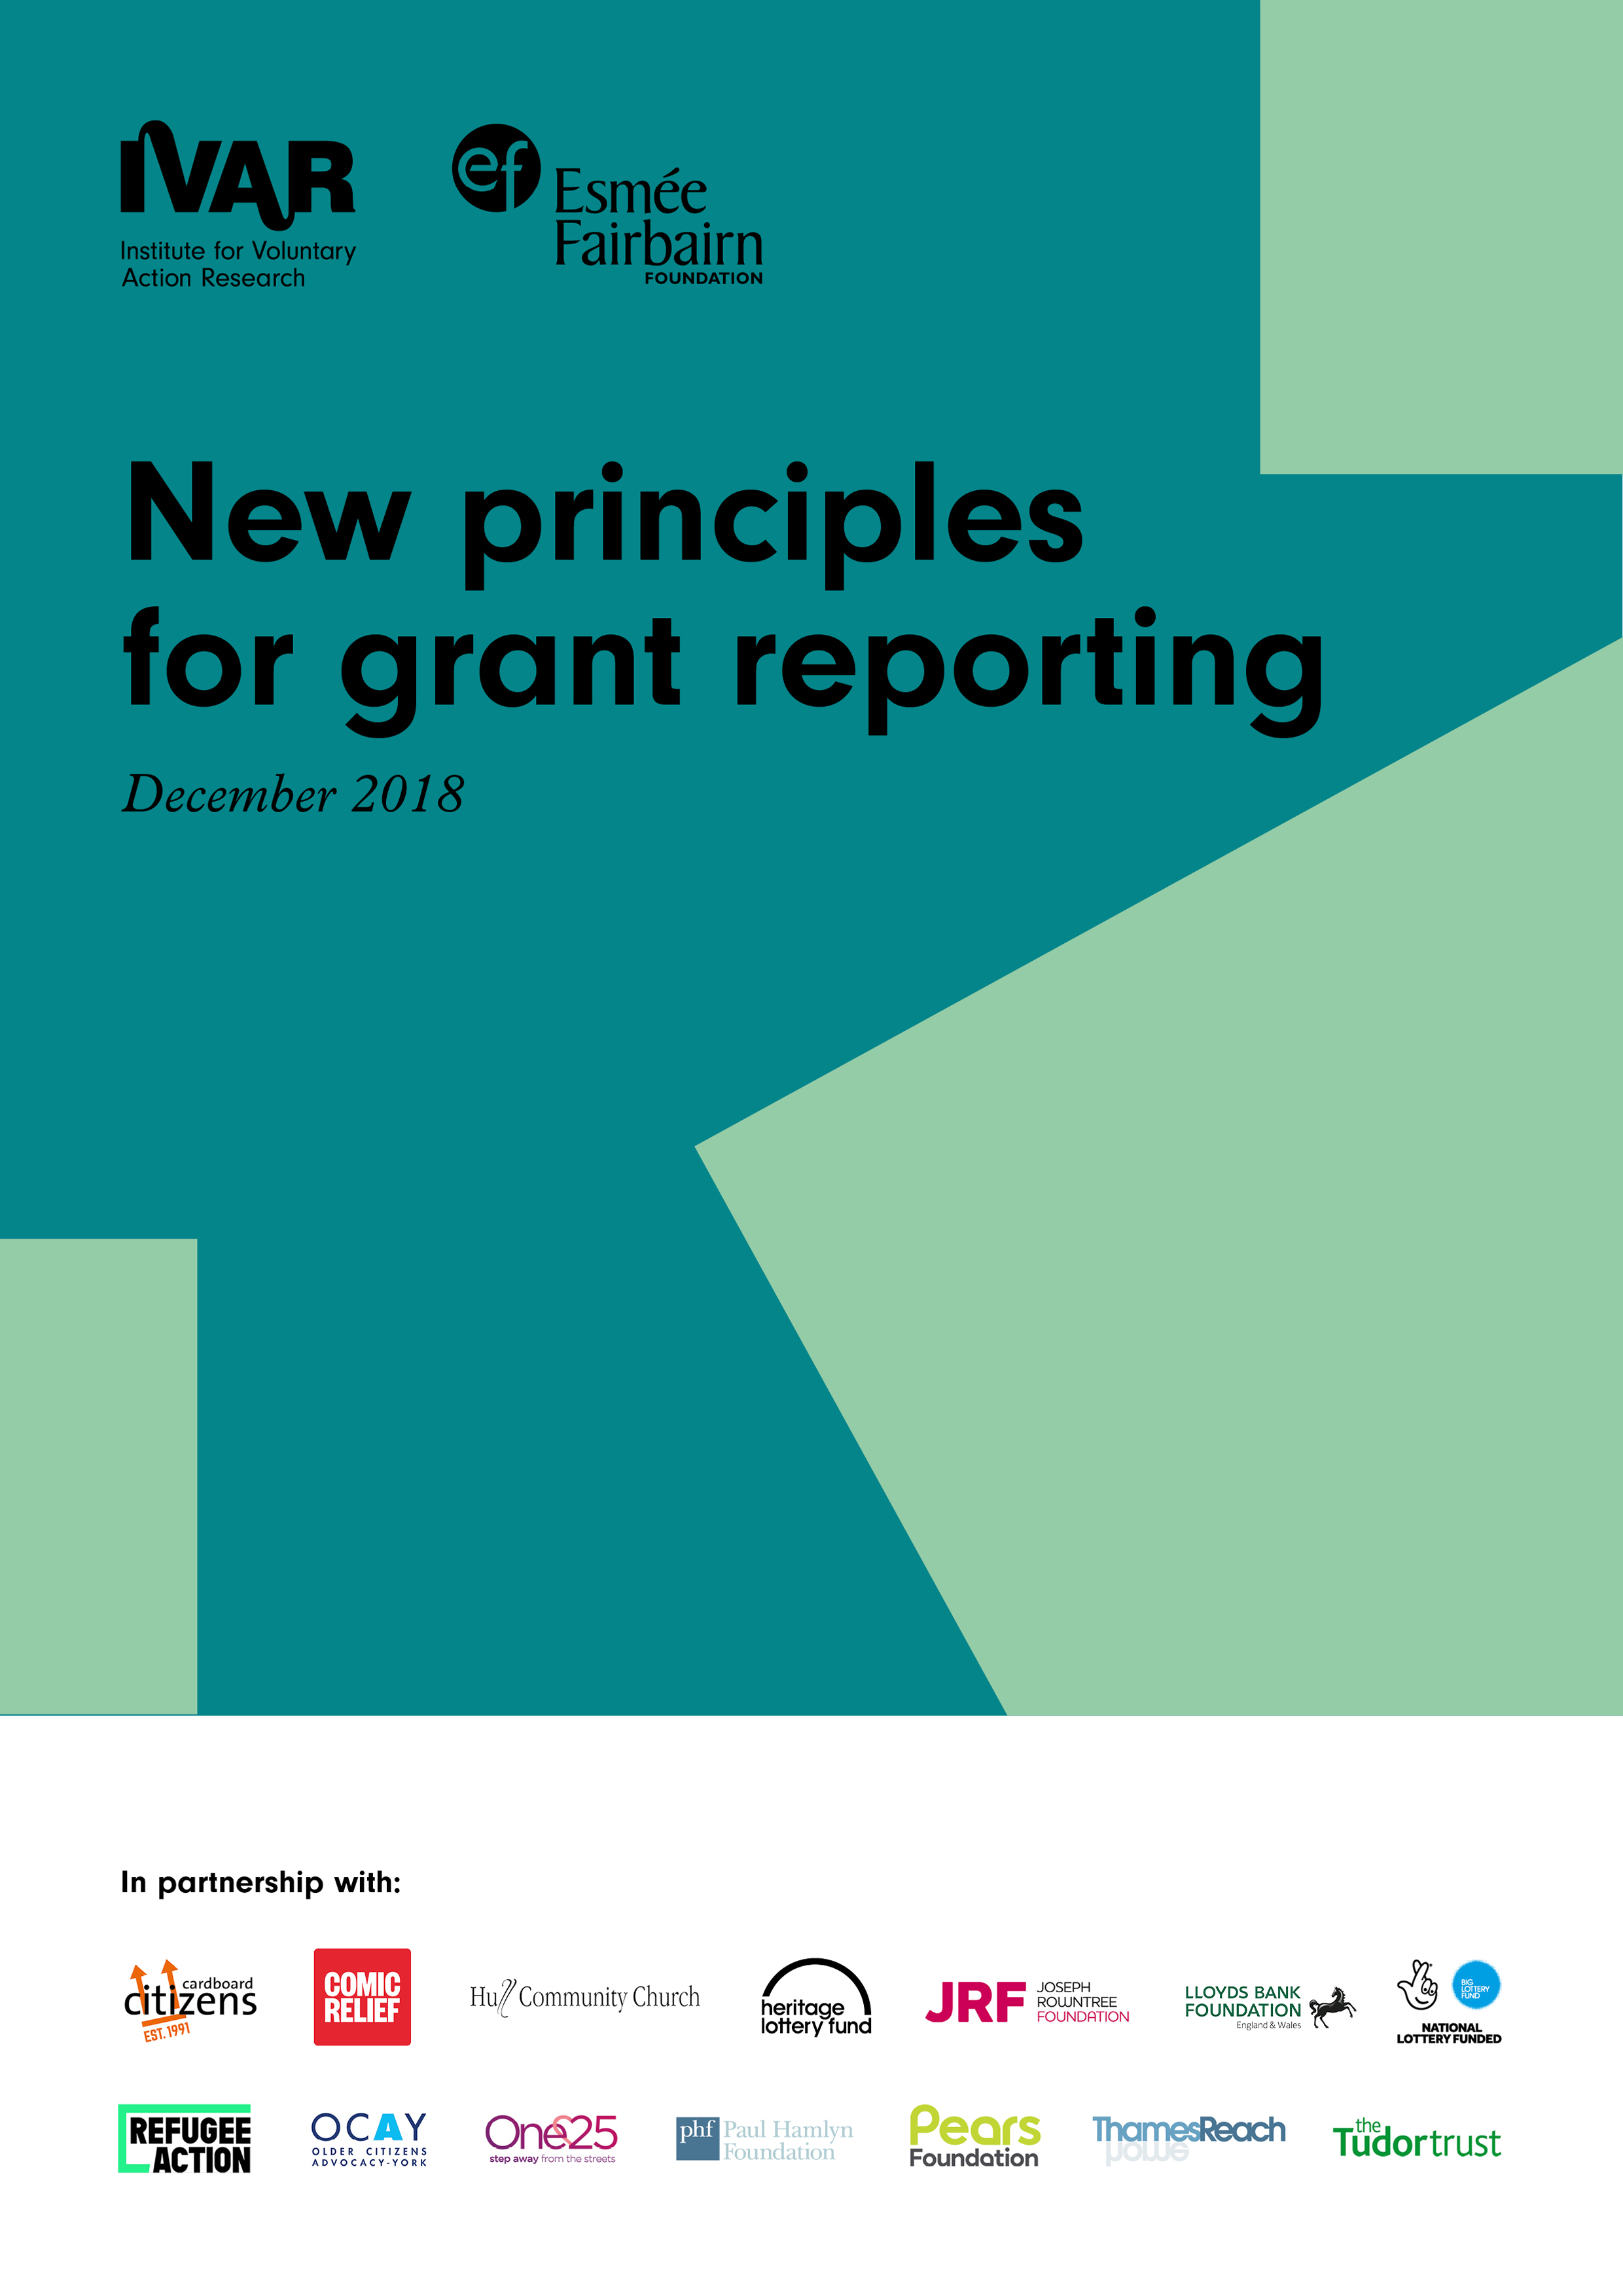 Exploring opportunities to align grant reporting